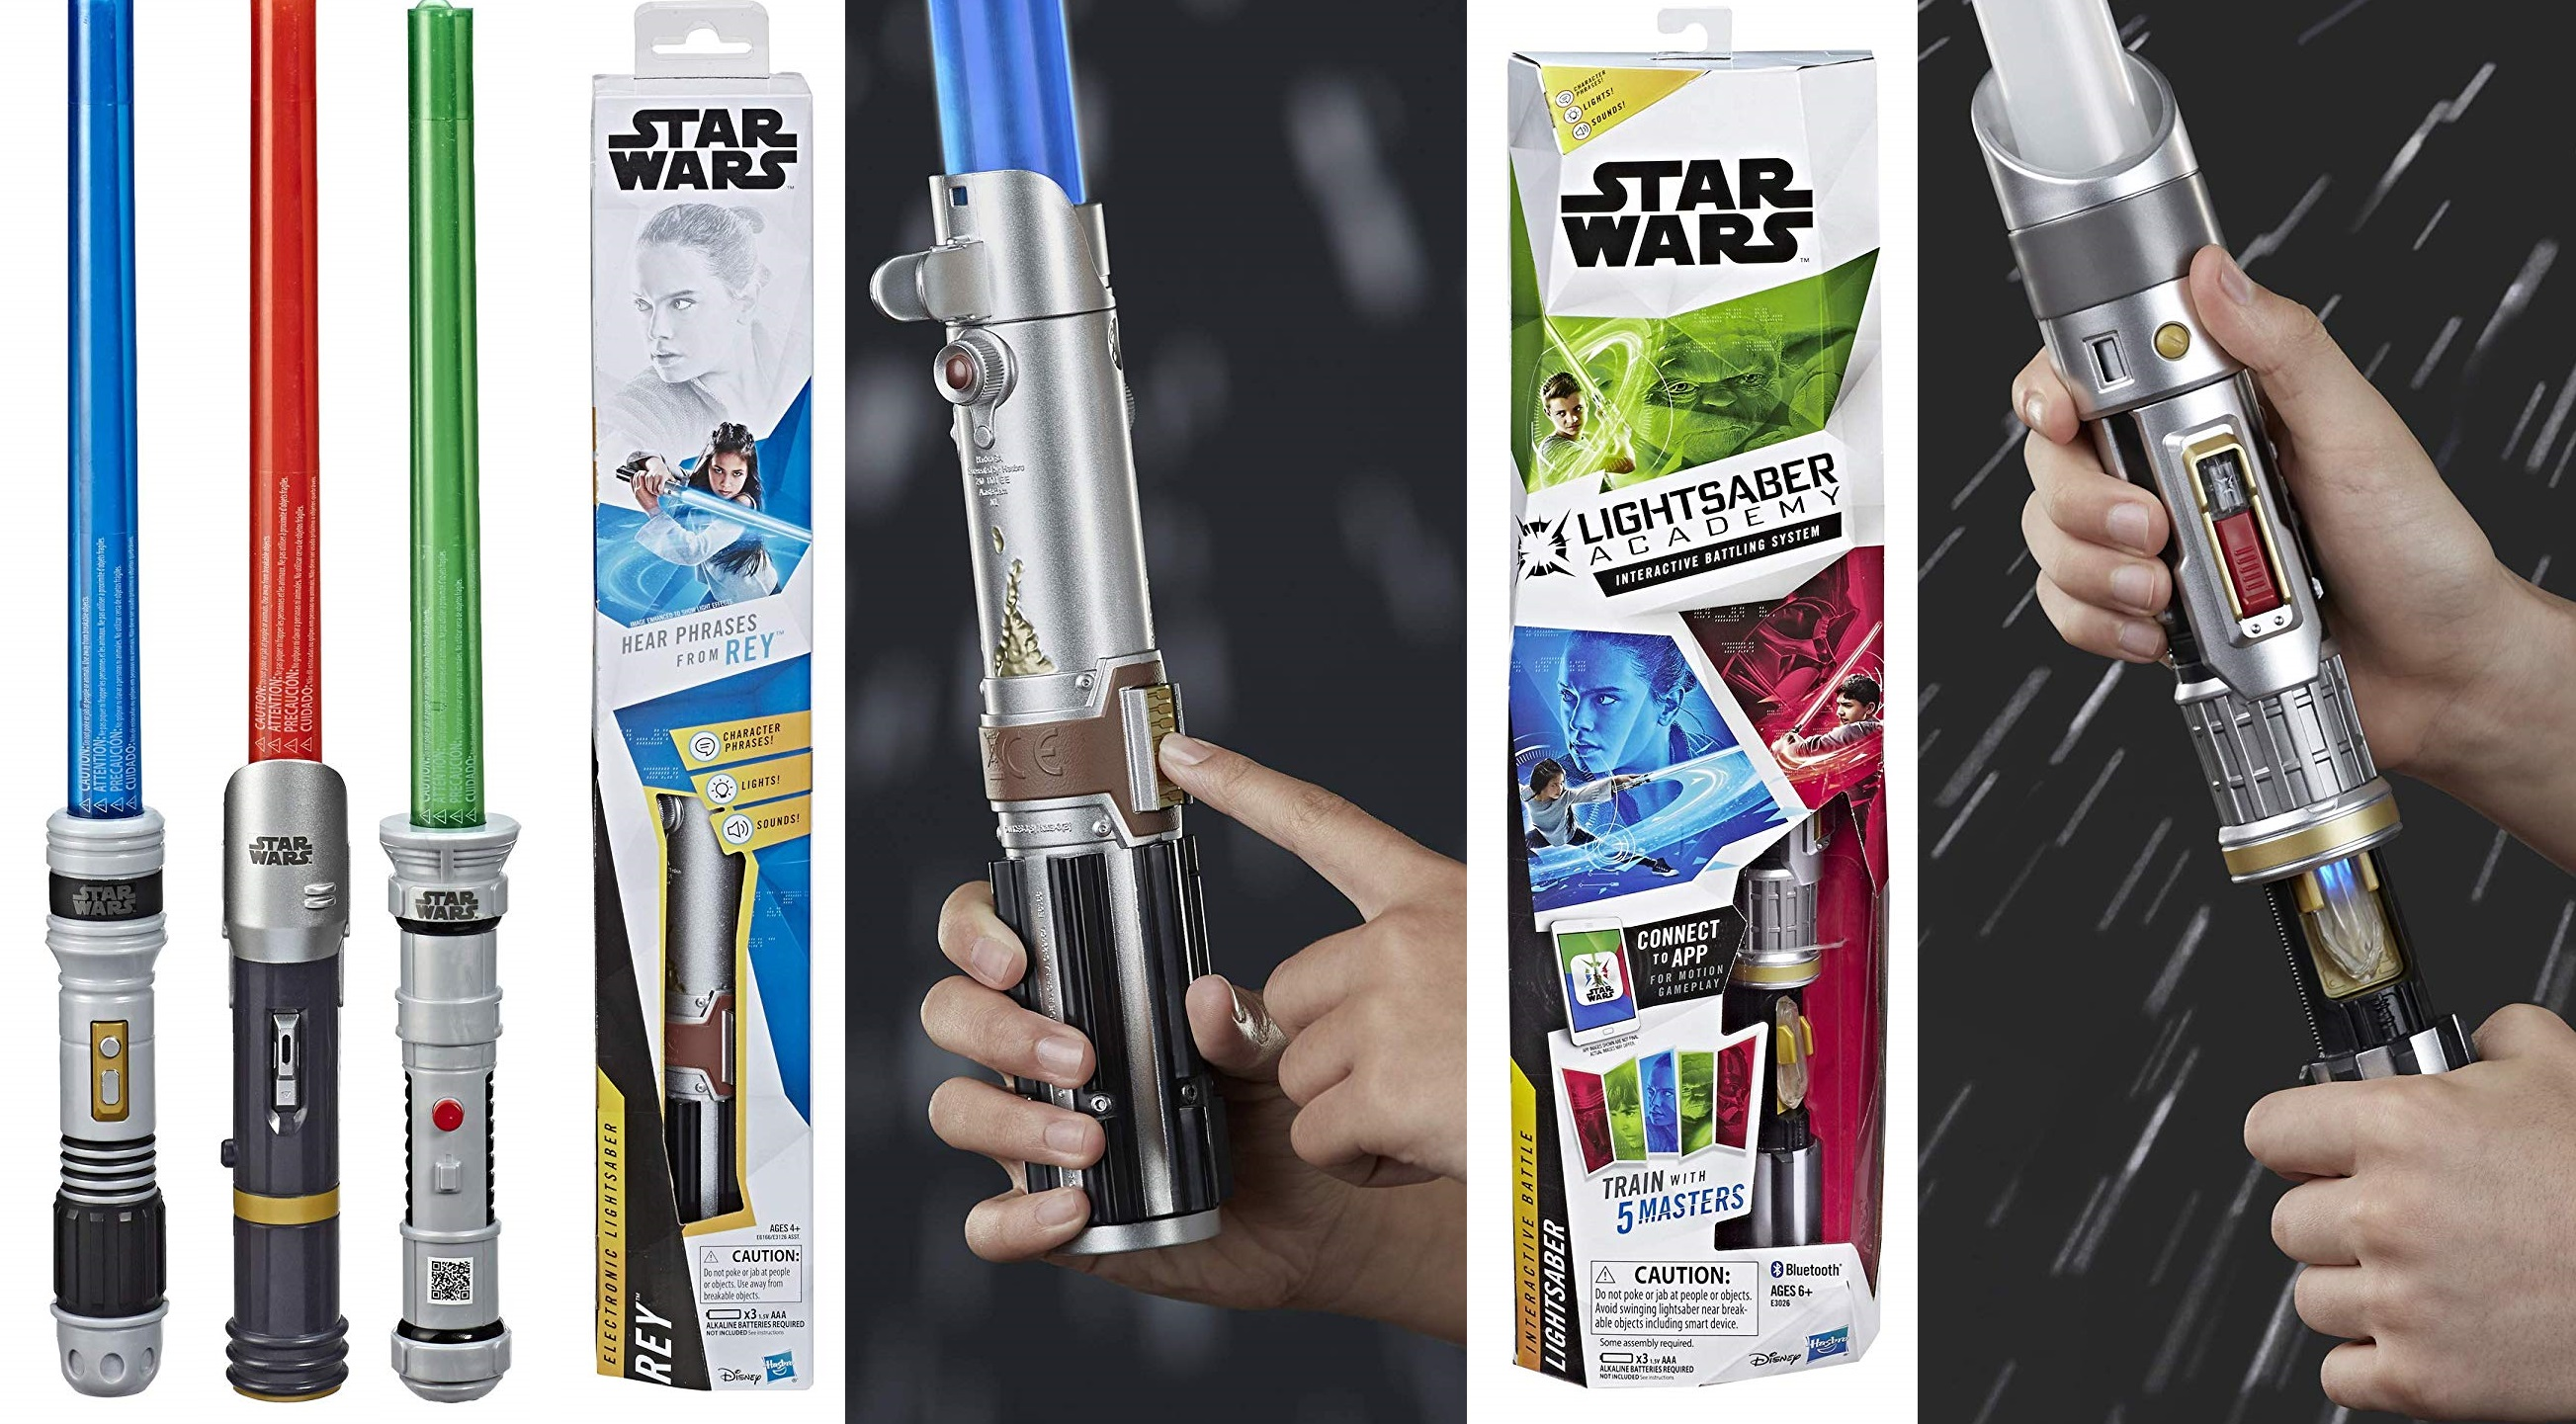 Hasbro Star Wars Lightsaber Academy Toys What You Should Know Sabersourcing